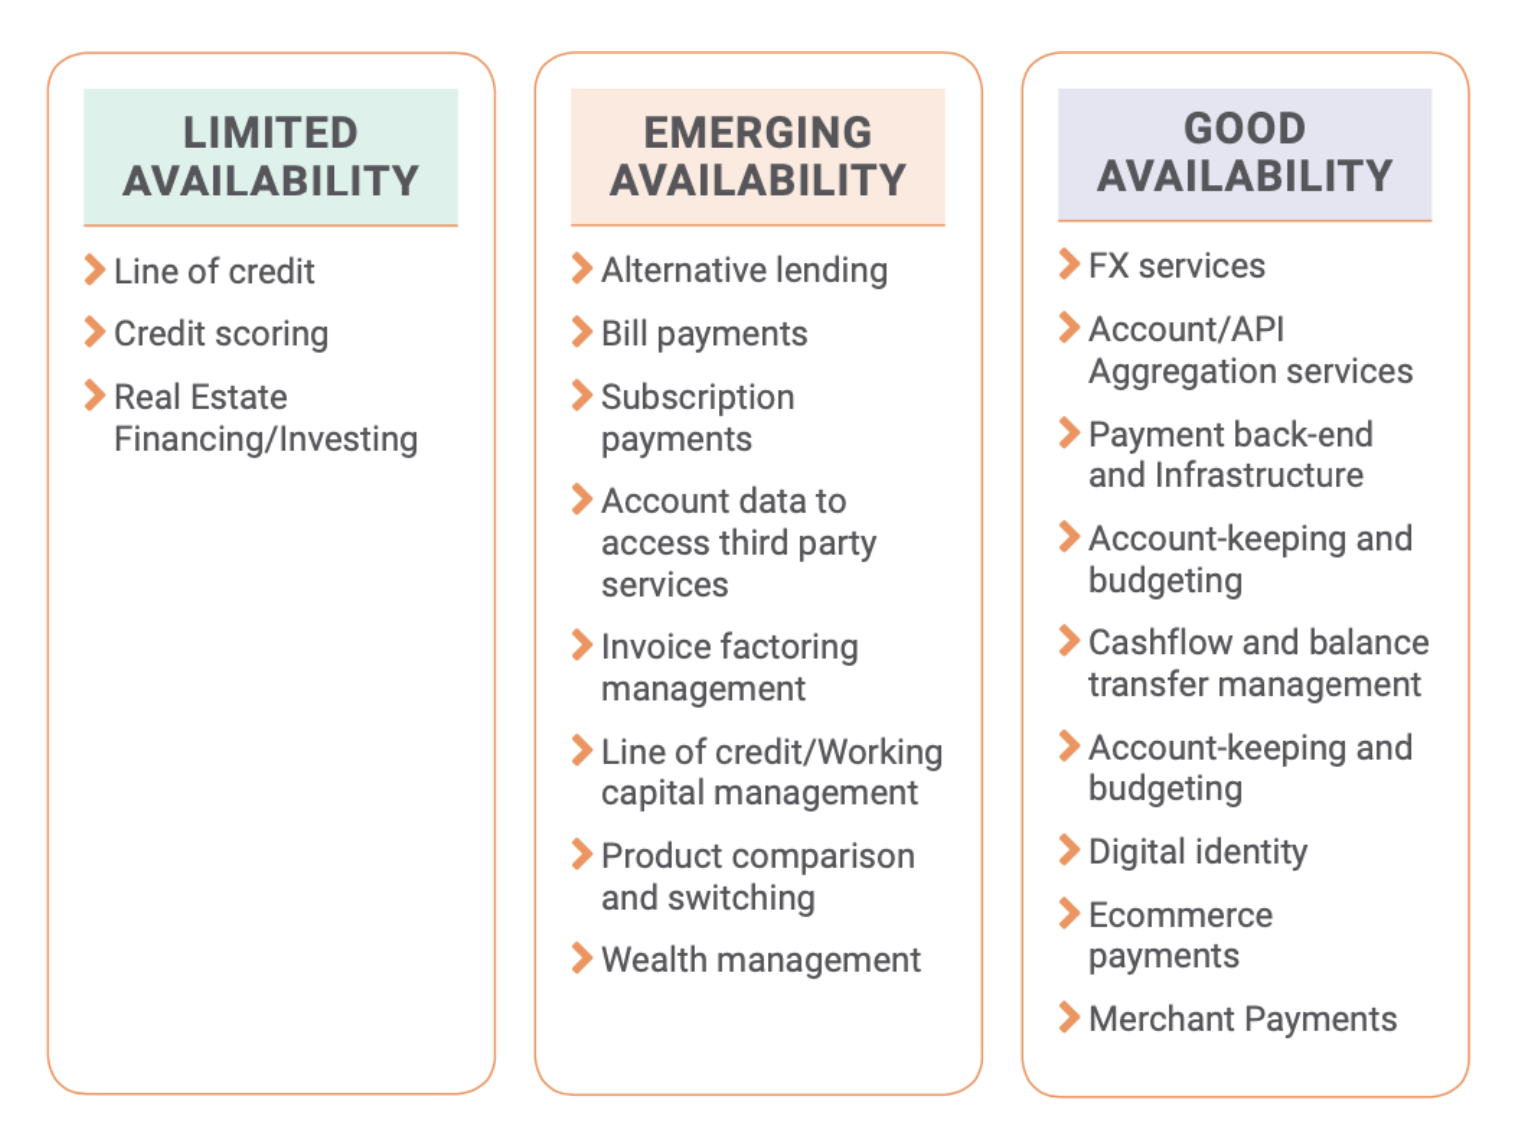 Fintech product availability